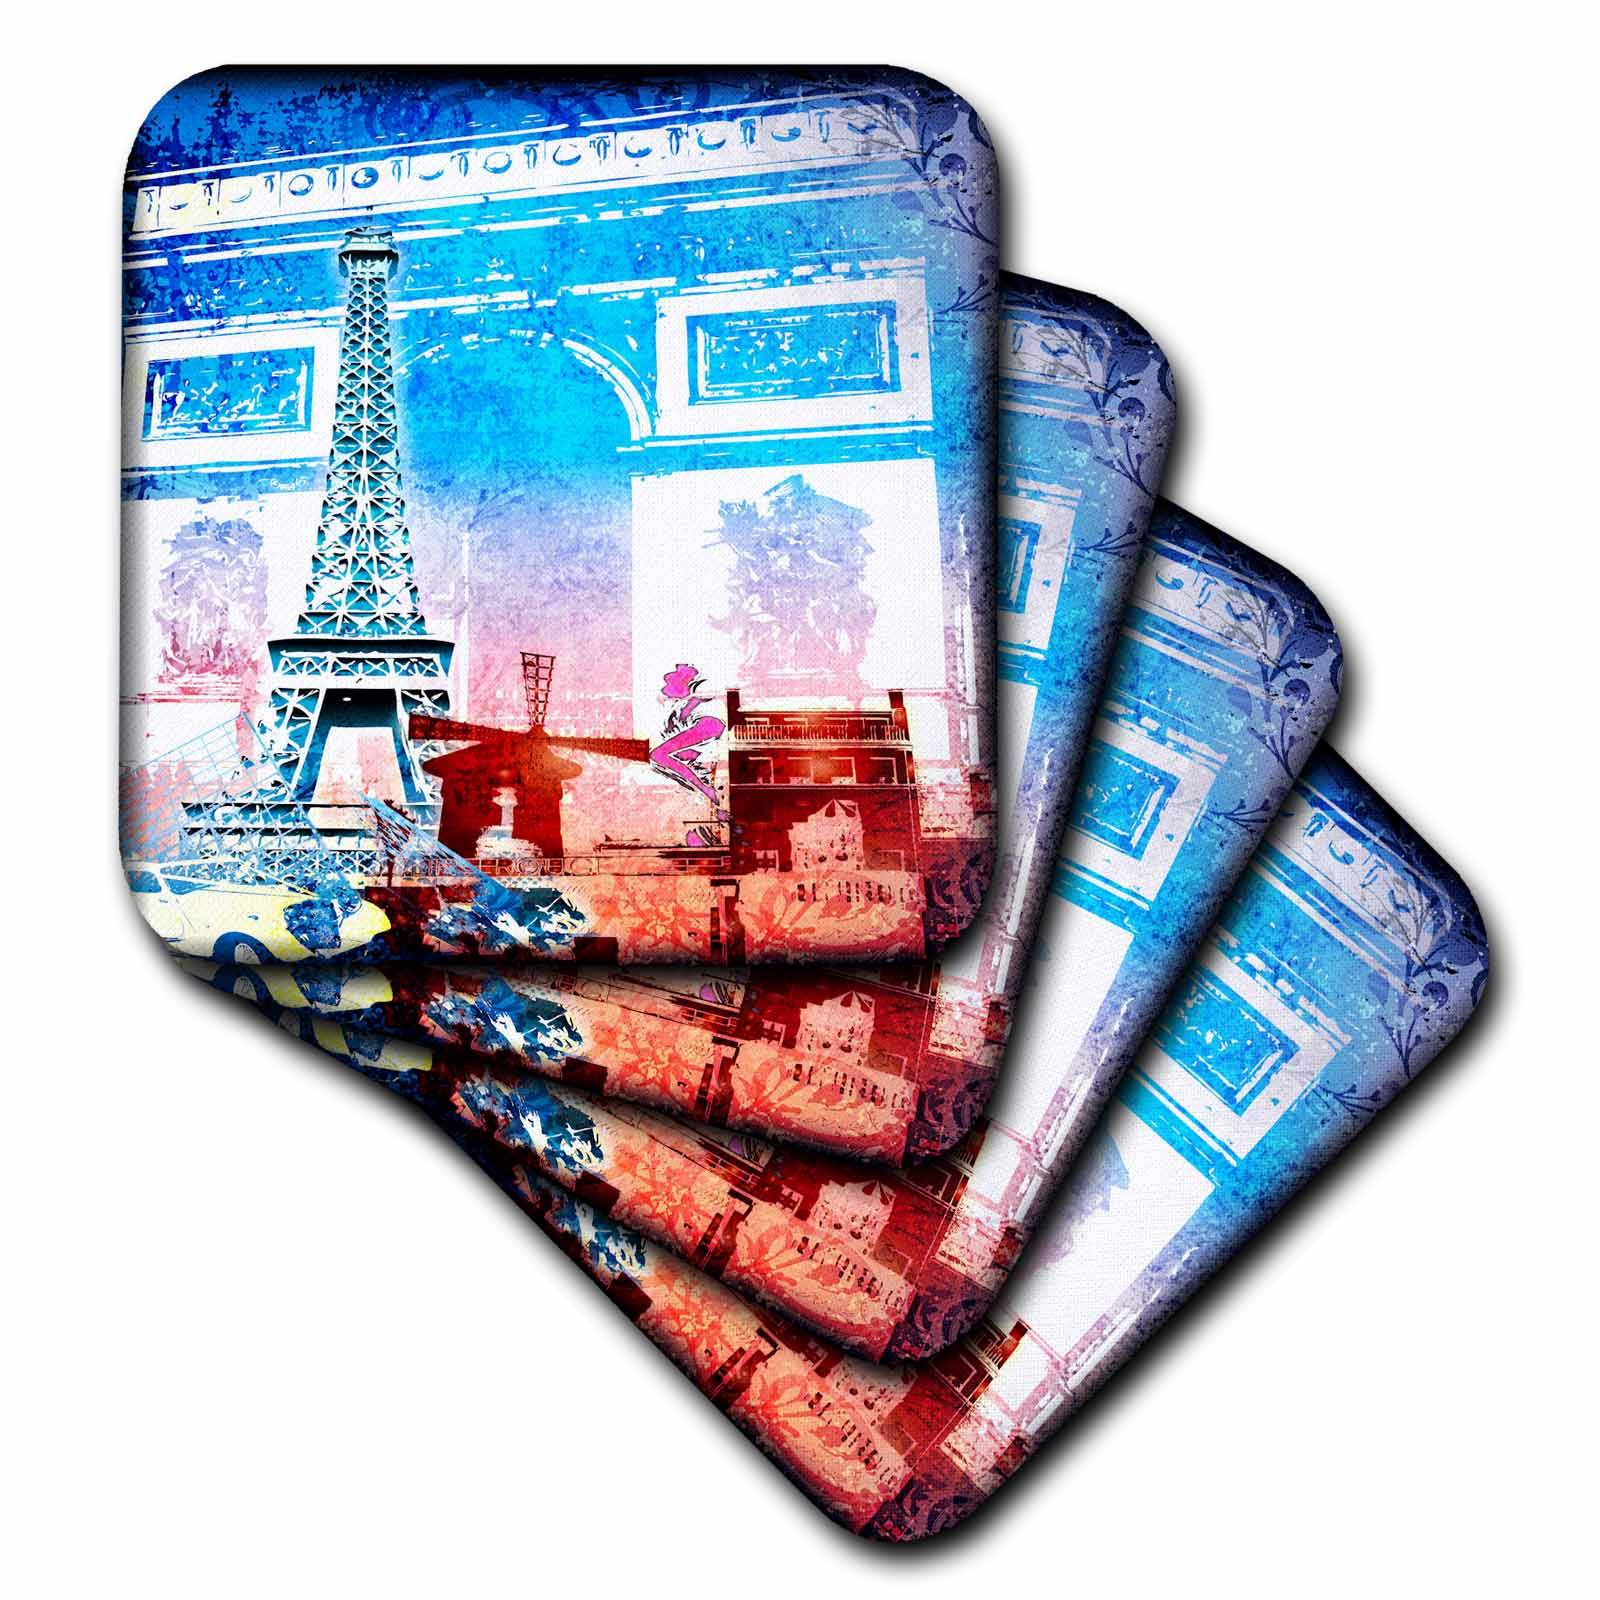 3dRose Paris Illustration, Soft Coasters, set of 4